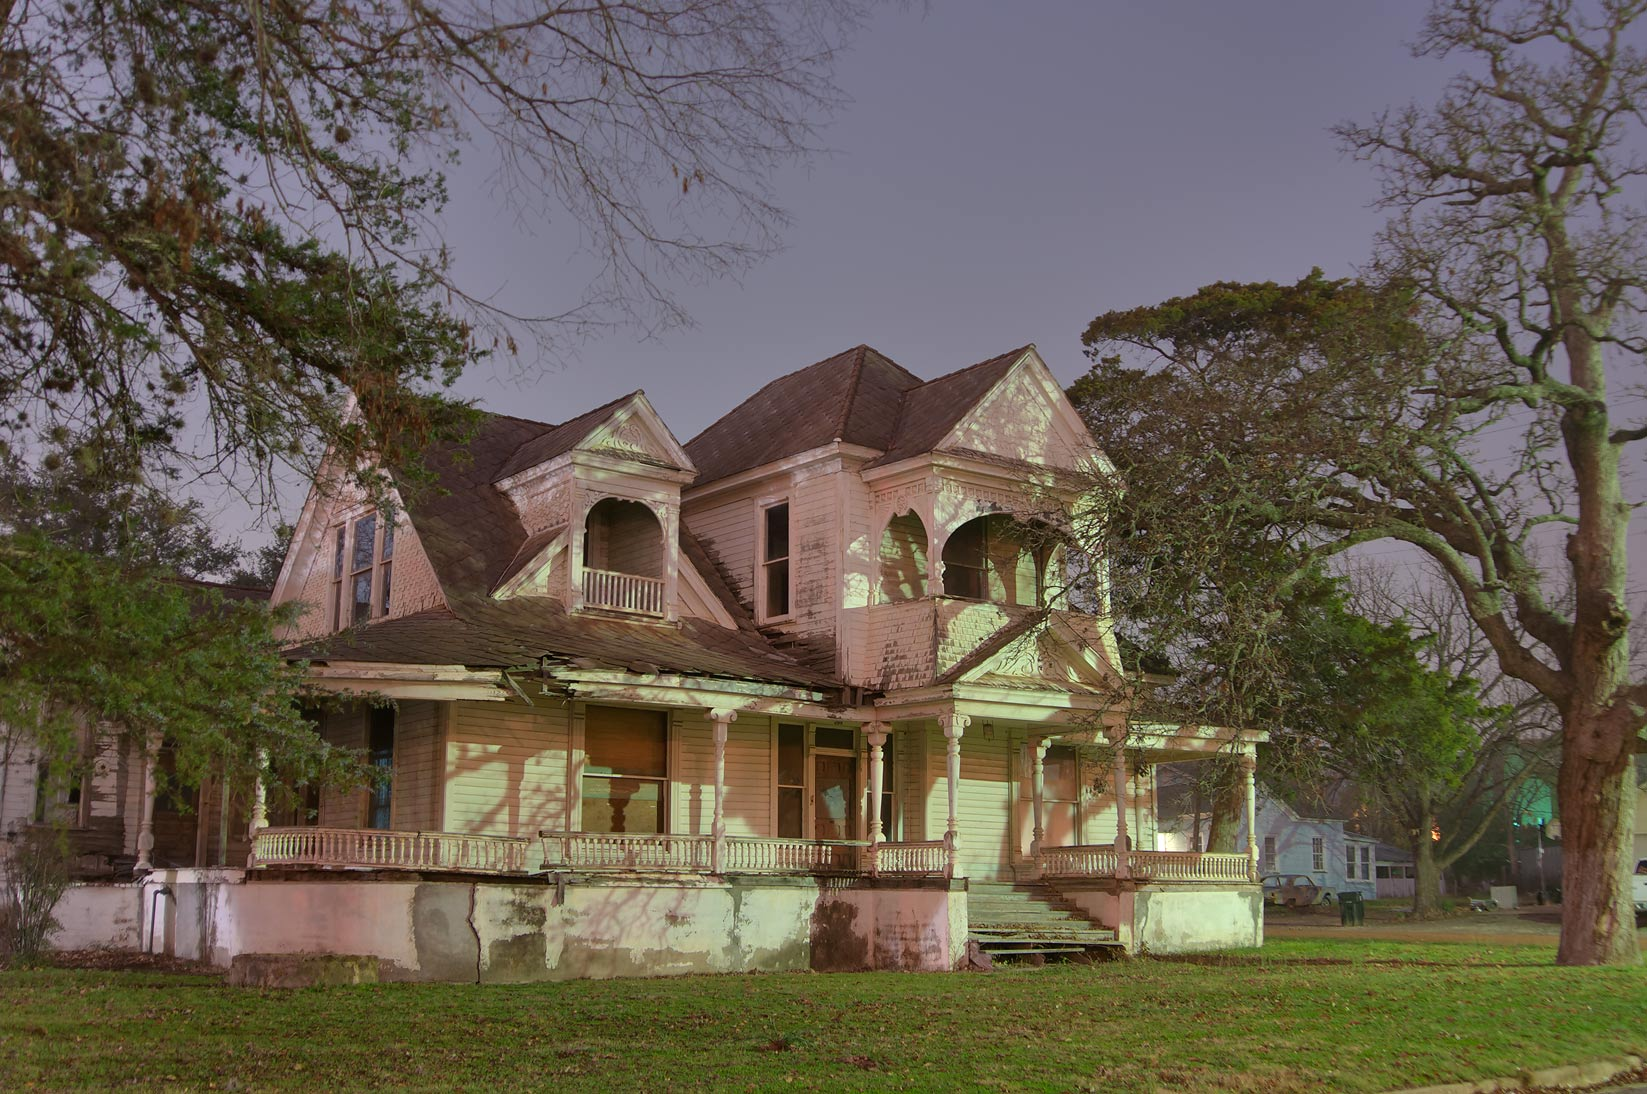 Abrams-Allday House (1887) at 209 East Burnett St., a corner of Pine St.. Calvert, Texas